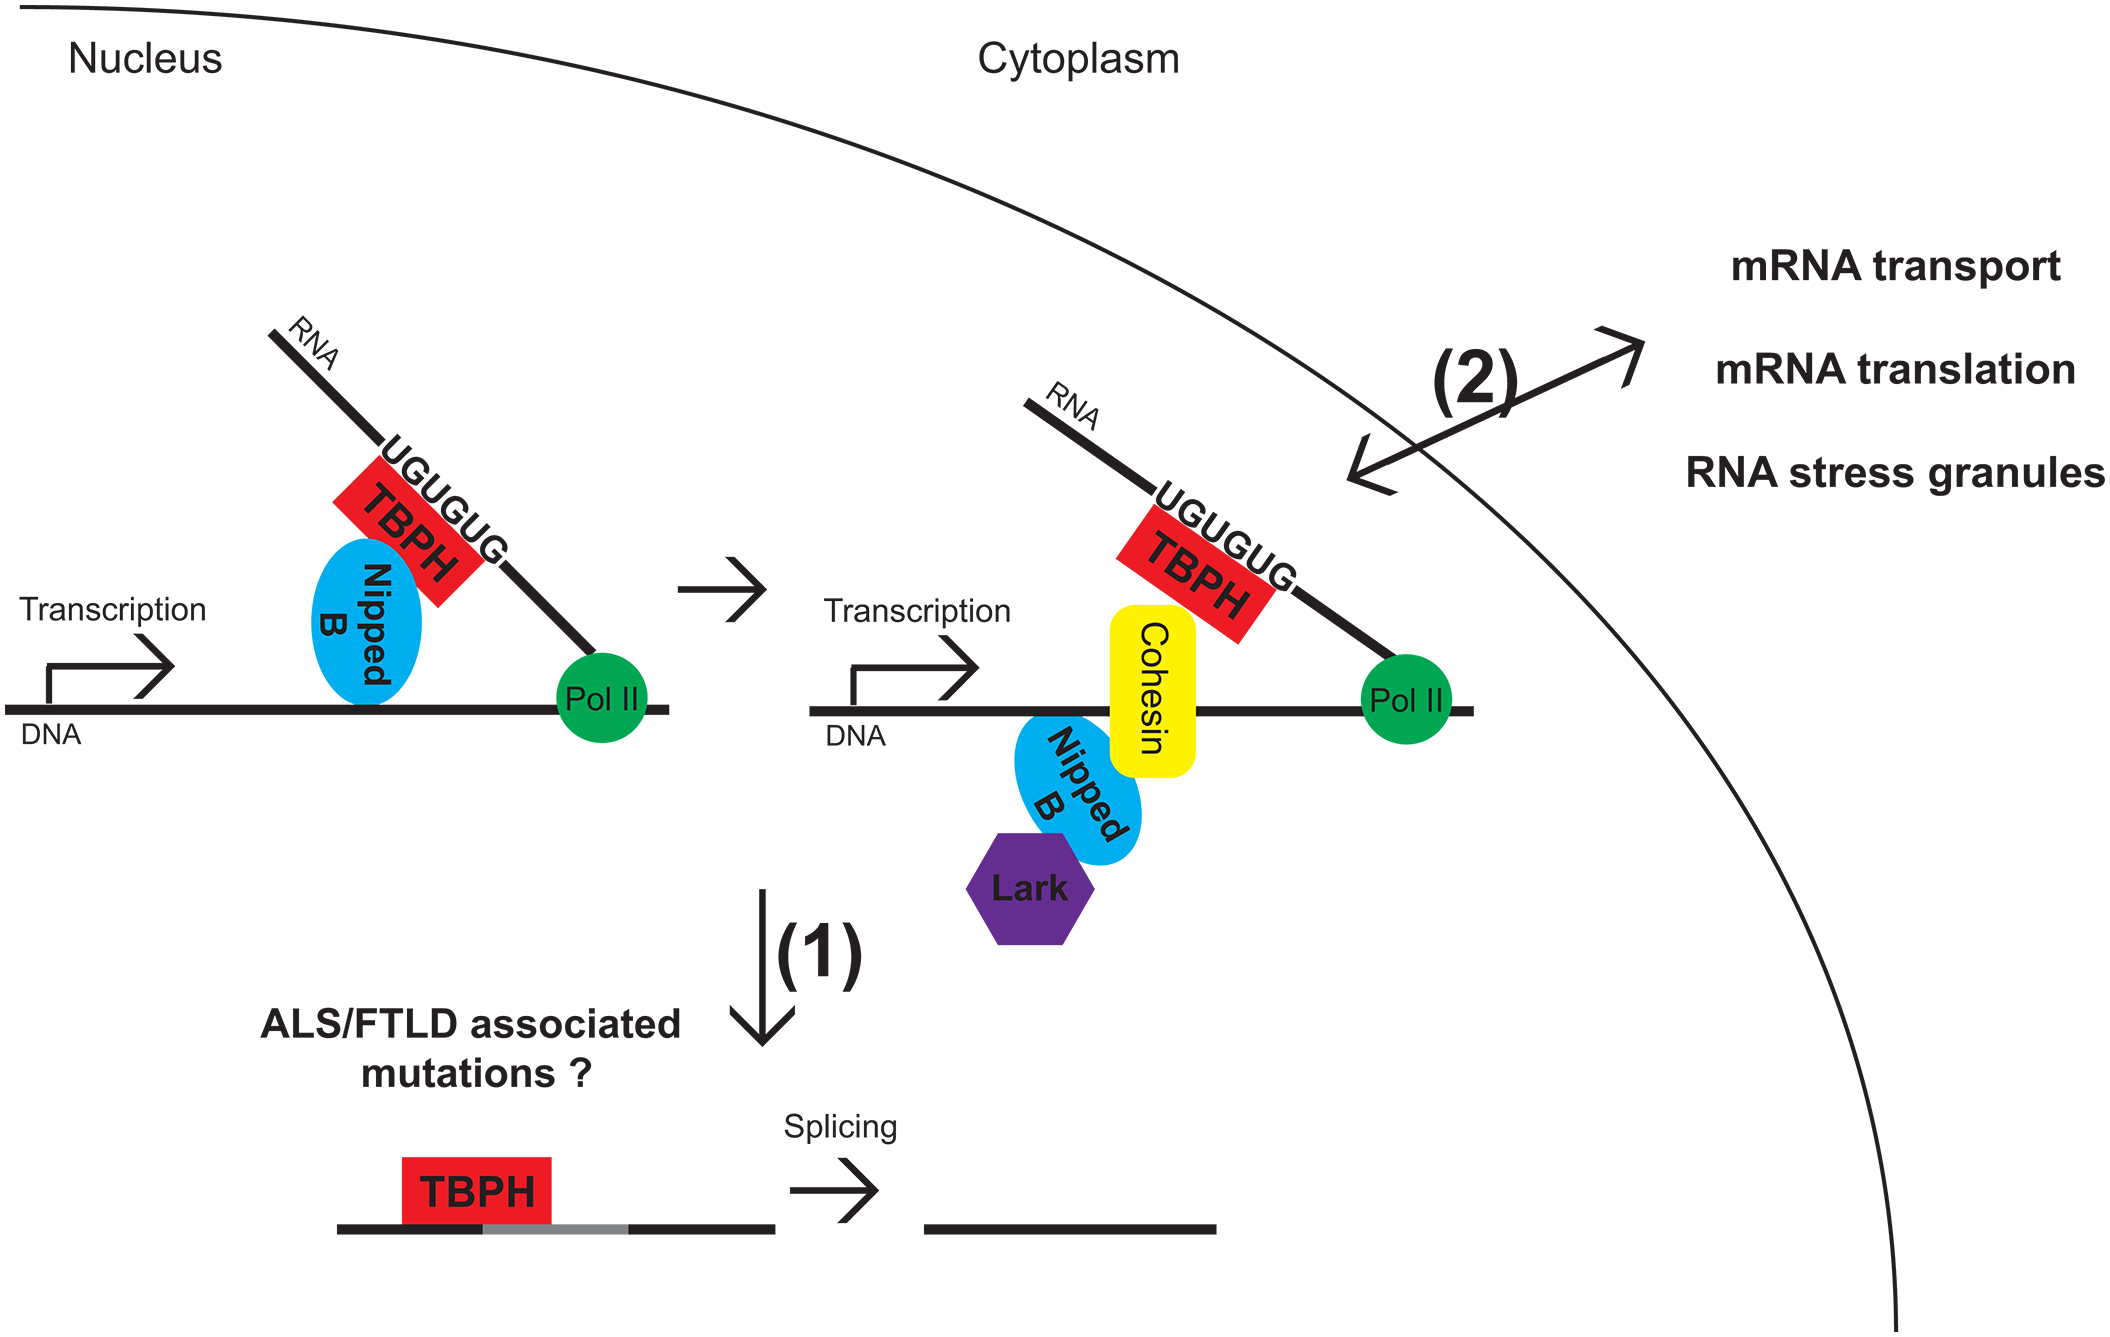 Model for TBPH and Lark interacting with Nipped-B and cohesin.